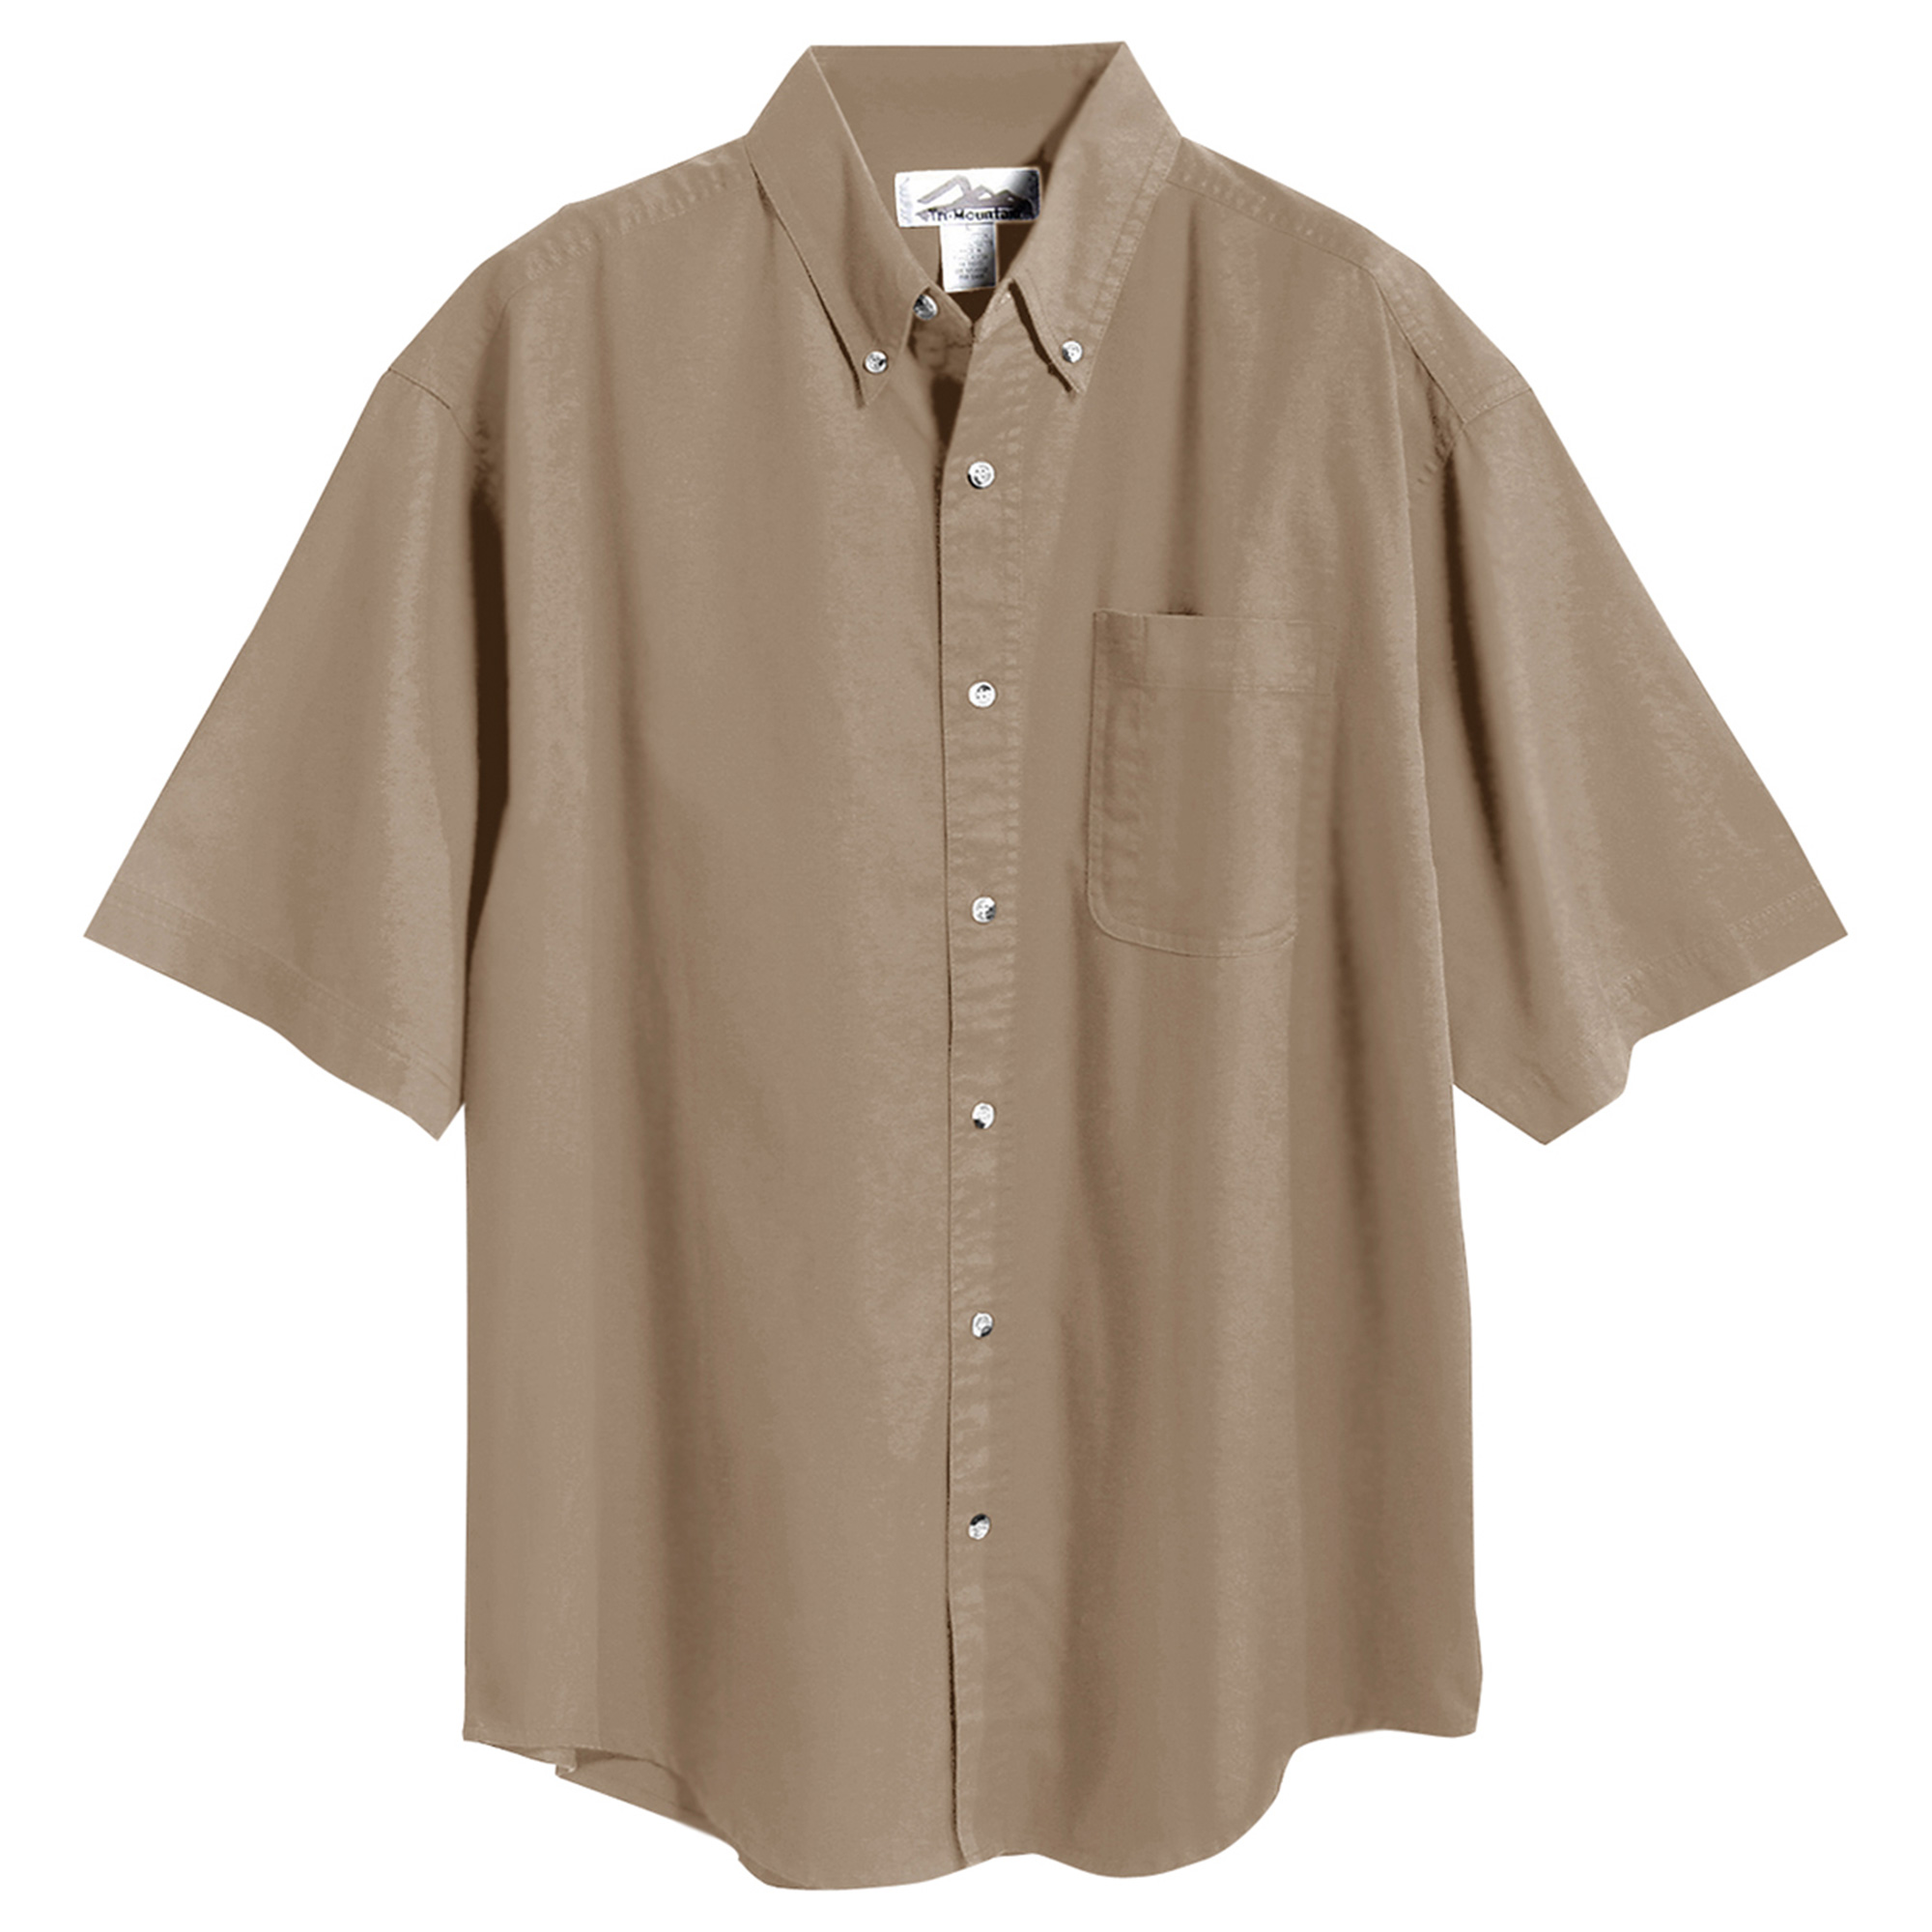 Tri-Mountain Men's Big And Tall Stain Resistant Shirt